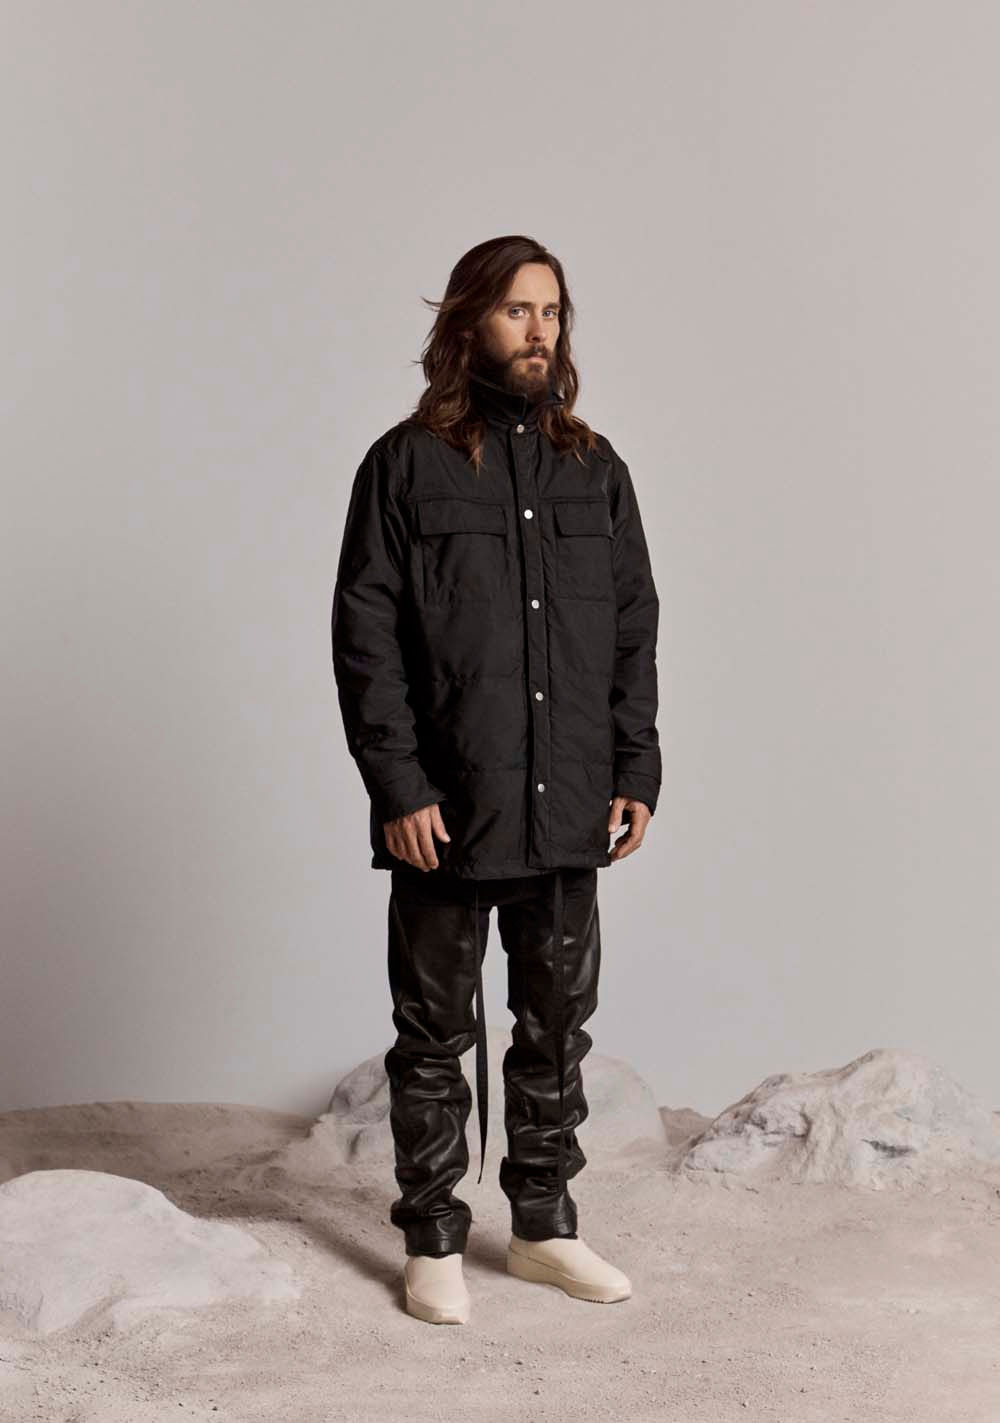 https_%2F%2Fhypebeast.com%2Fimage%2F2018%2F09%2Ffear-of-god-6-sixth-collection-jared-leto-nike-75.jpg